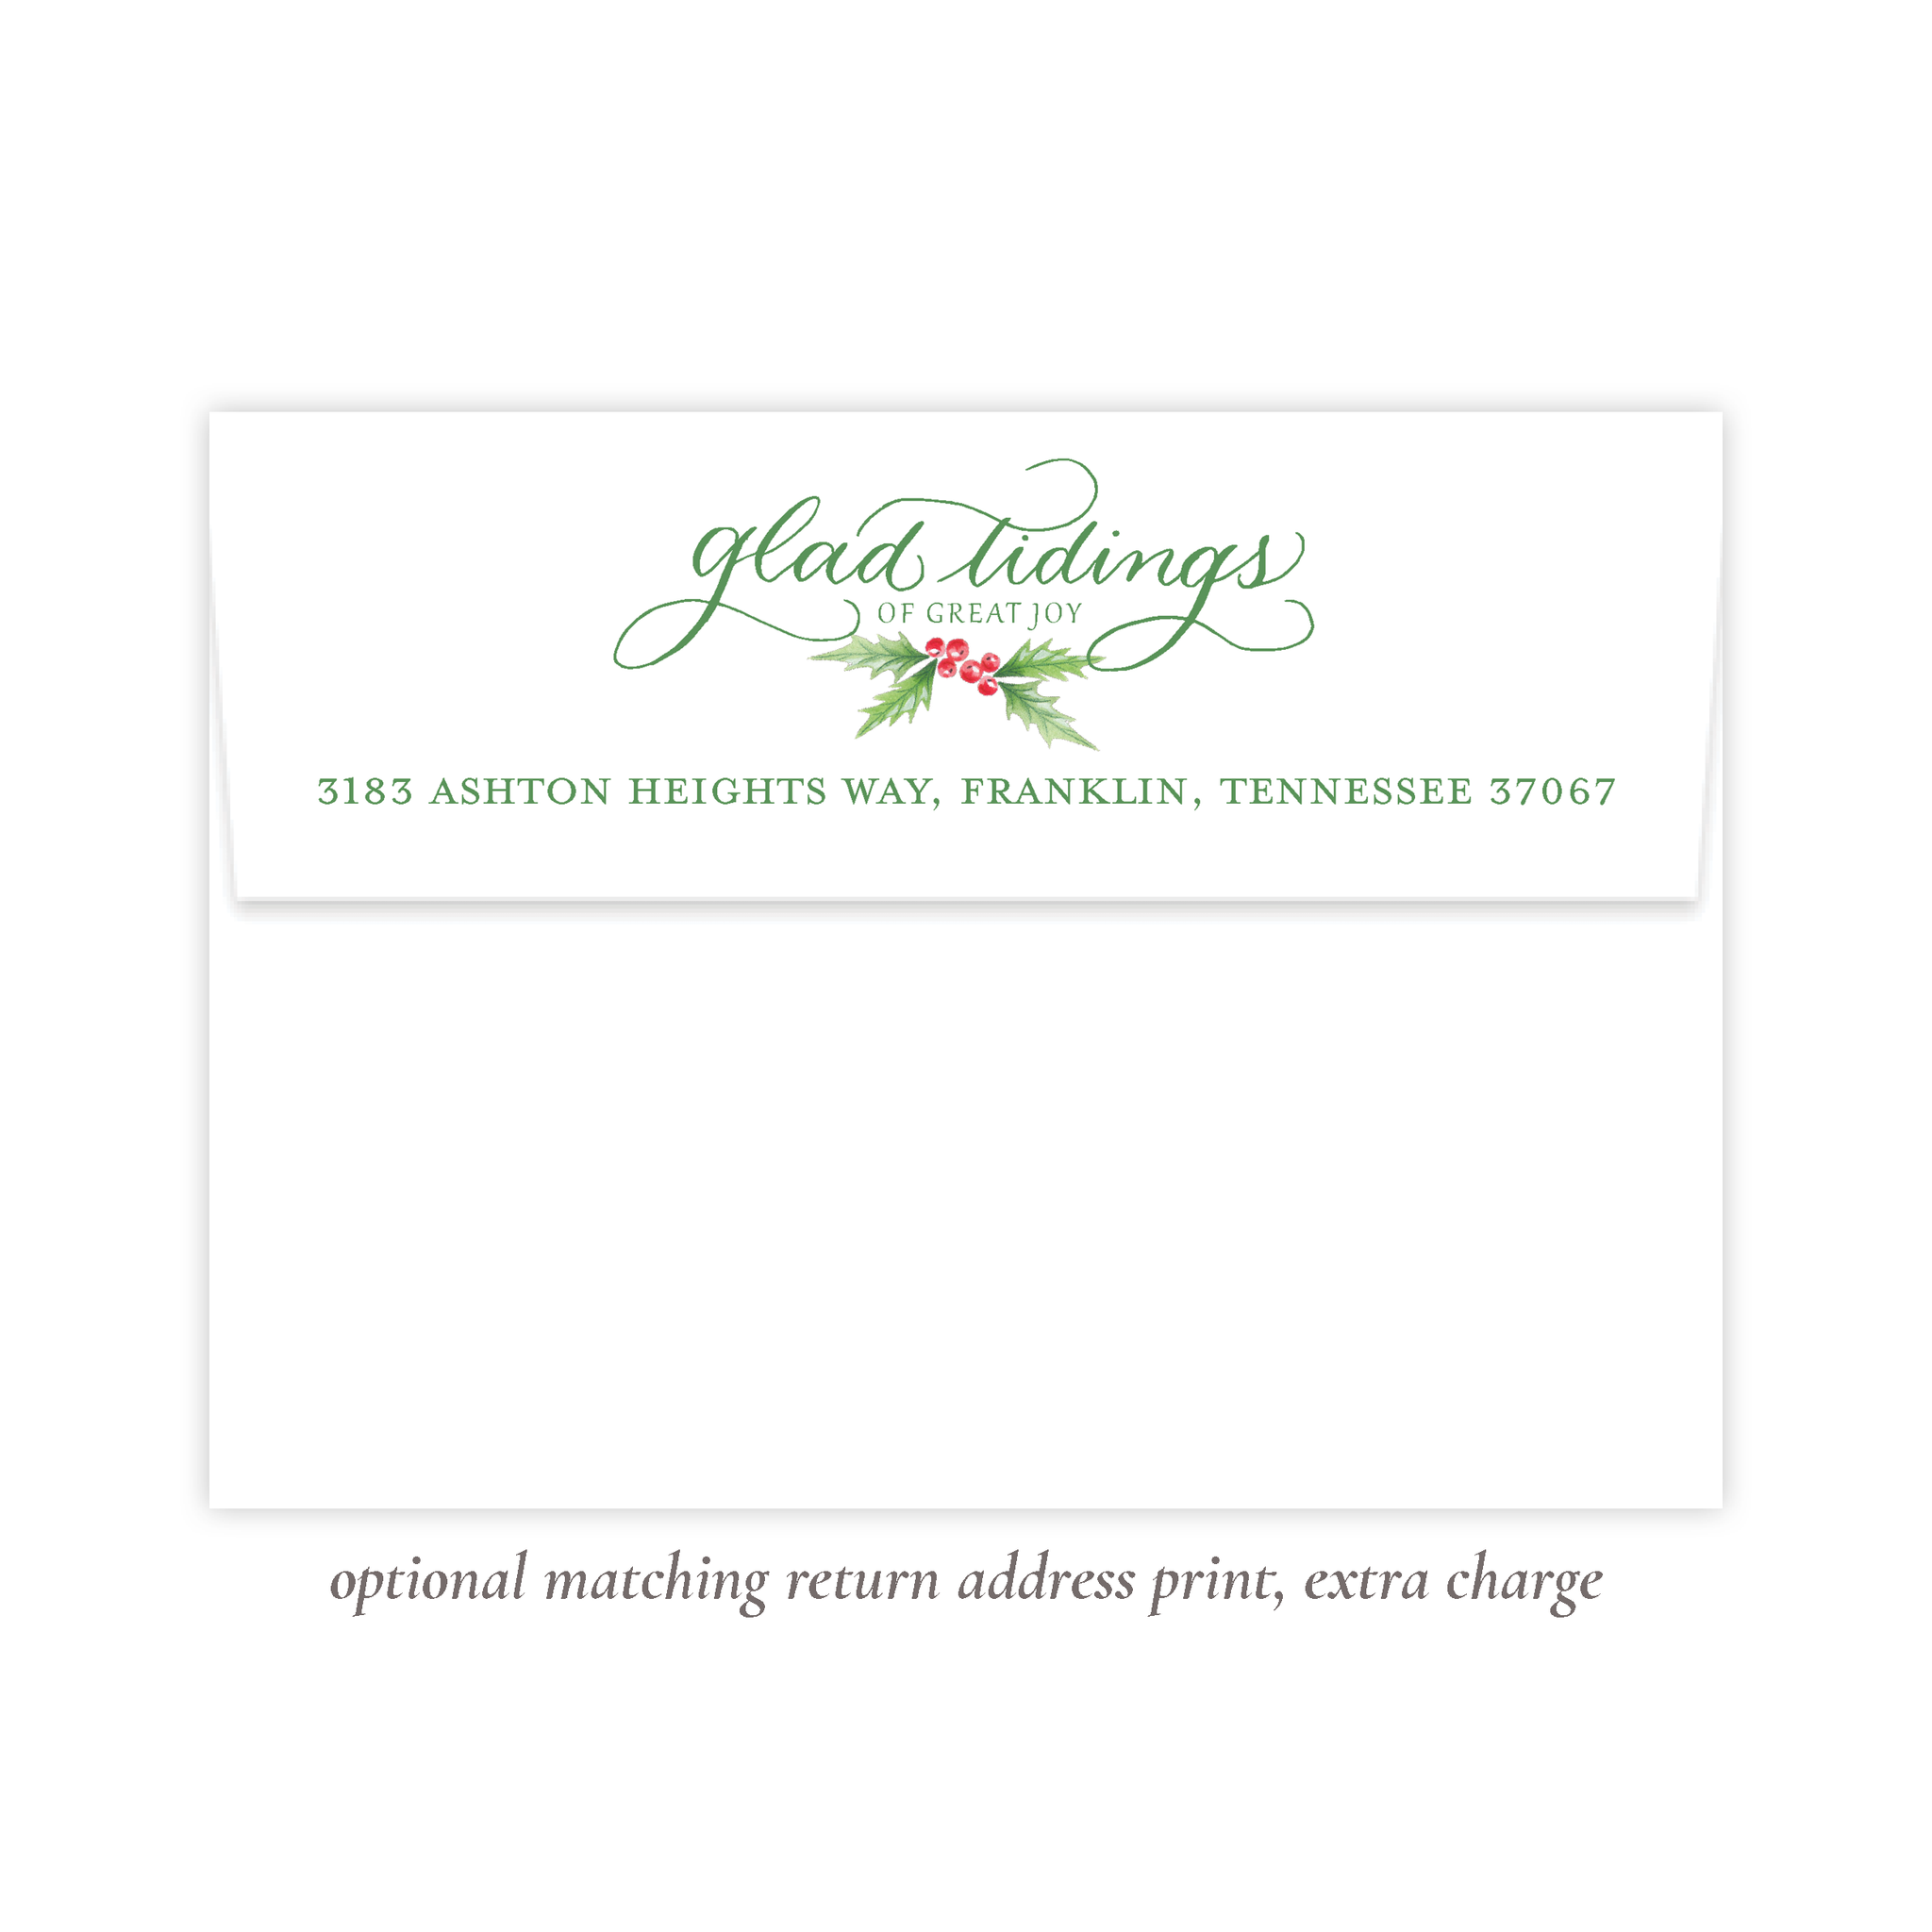 Conrad Court Green Return Address Print